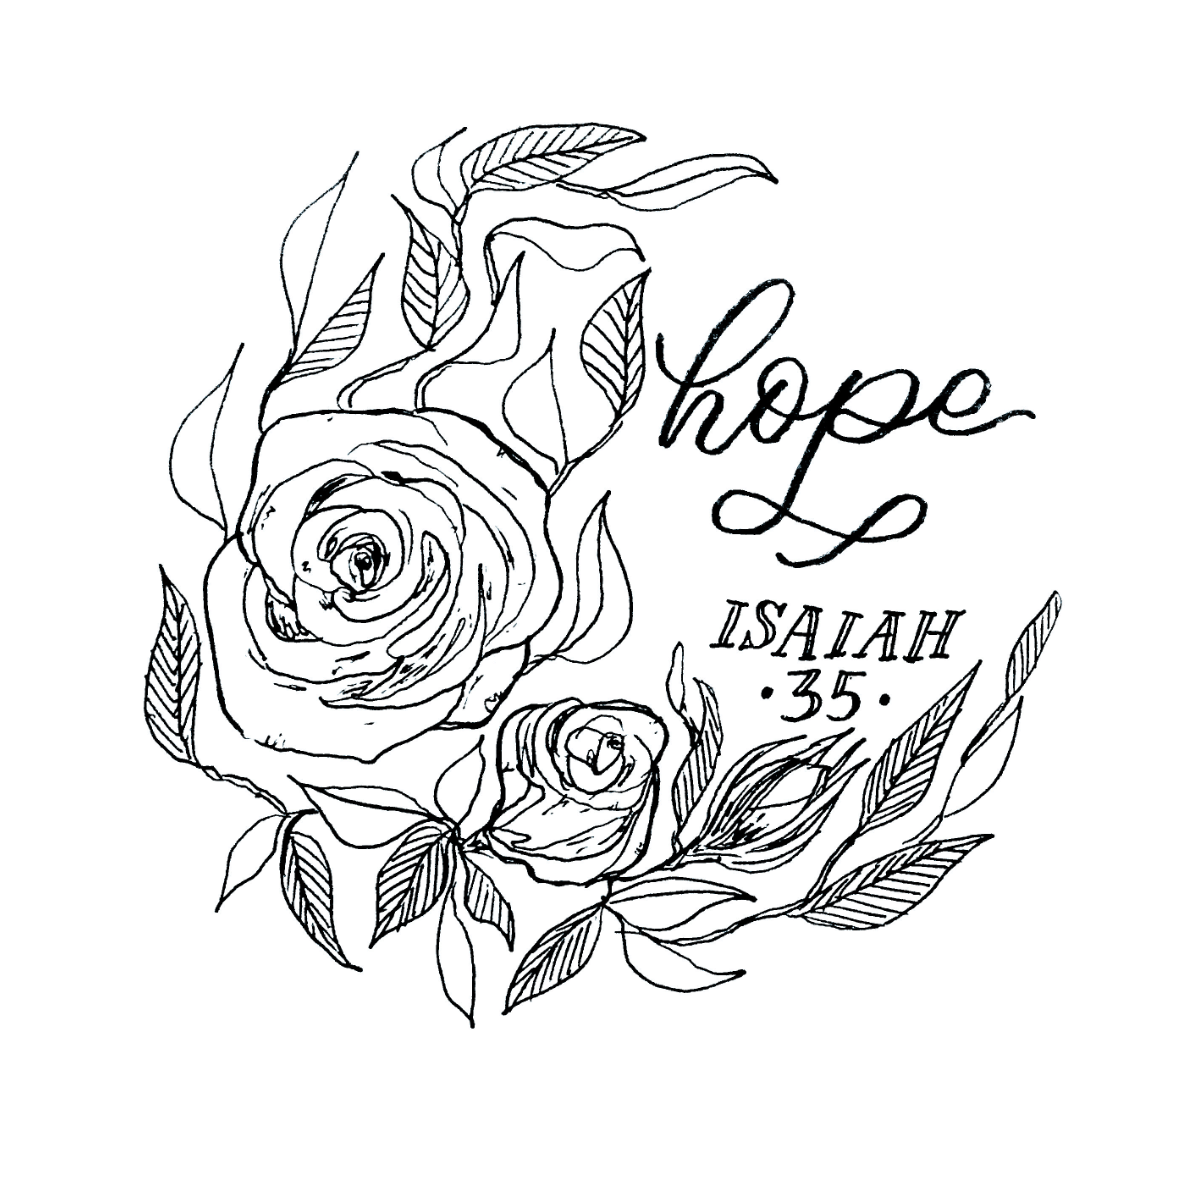 Hope – A Study of Isaiah 35